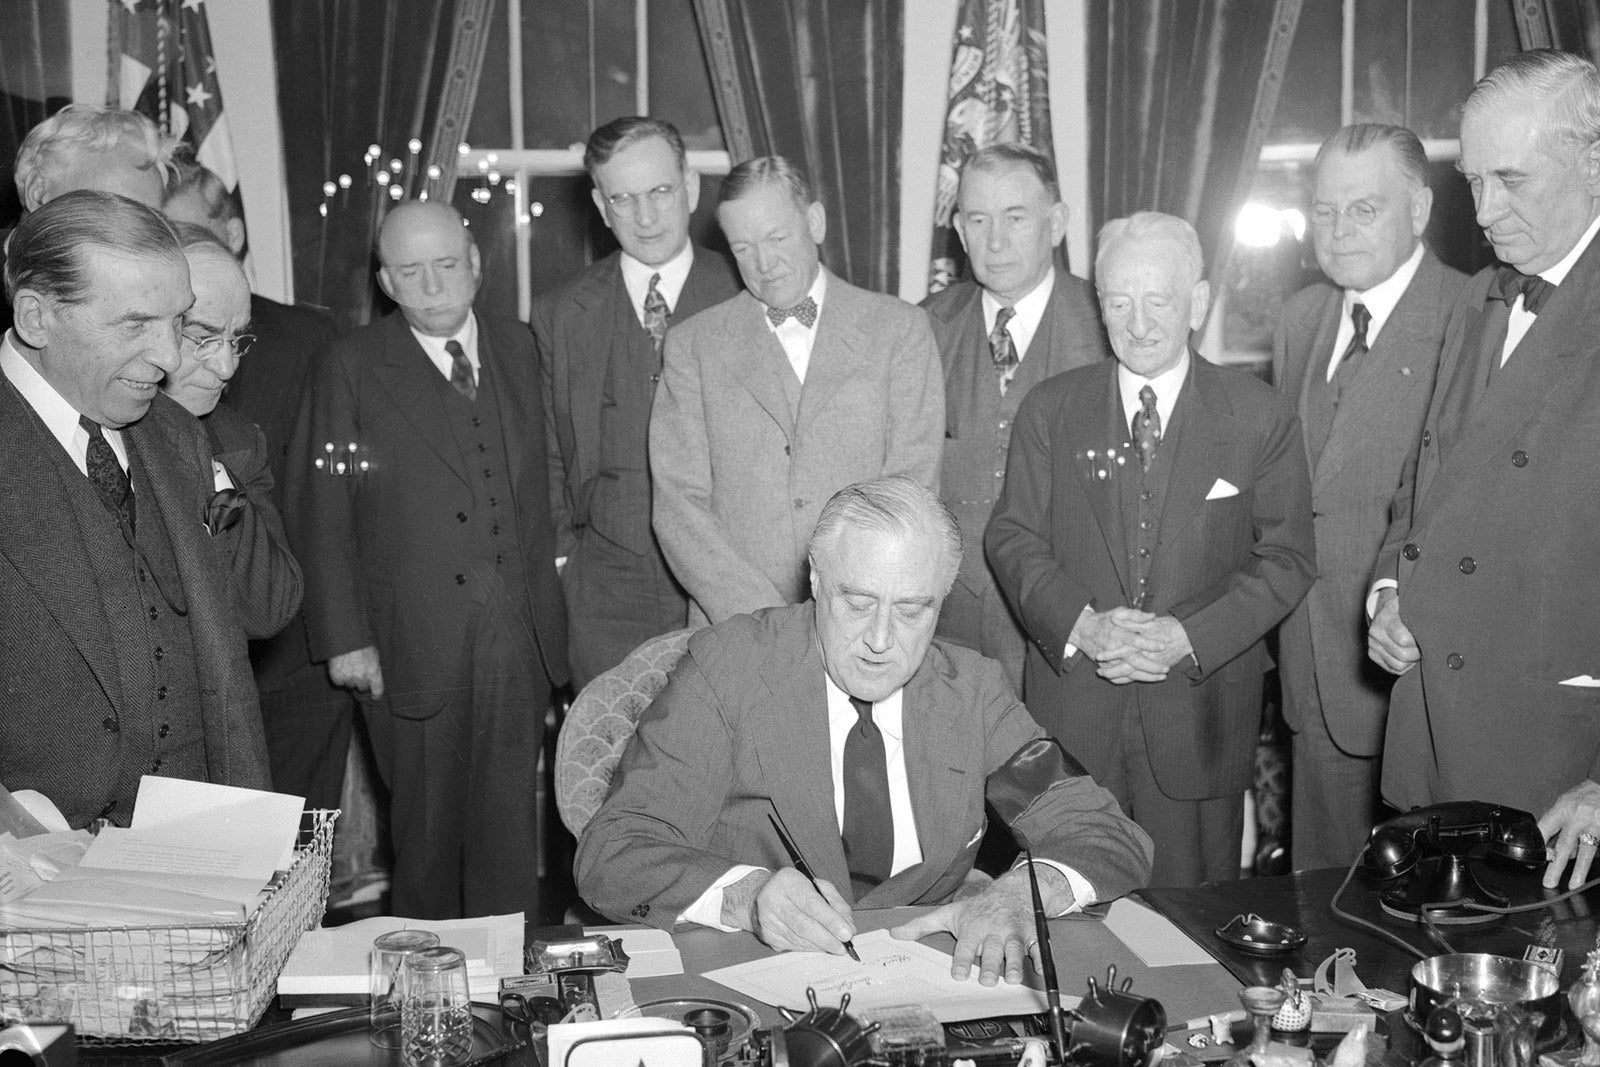 President Franklin D. Roosevelt signs the resolution declaring that a state of war exists between the United States and the Japanese Empire on Dec. 8, 1941.